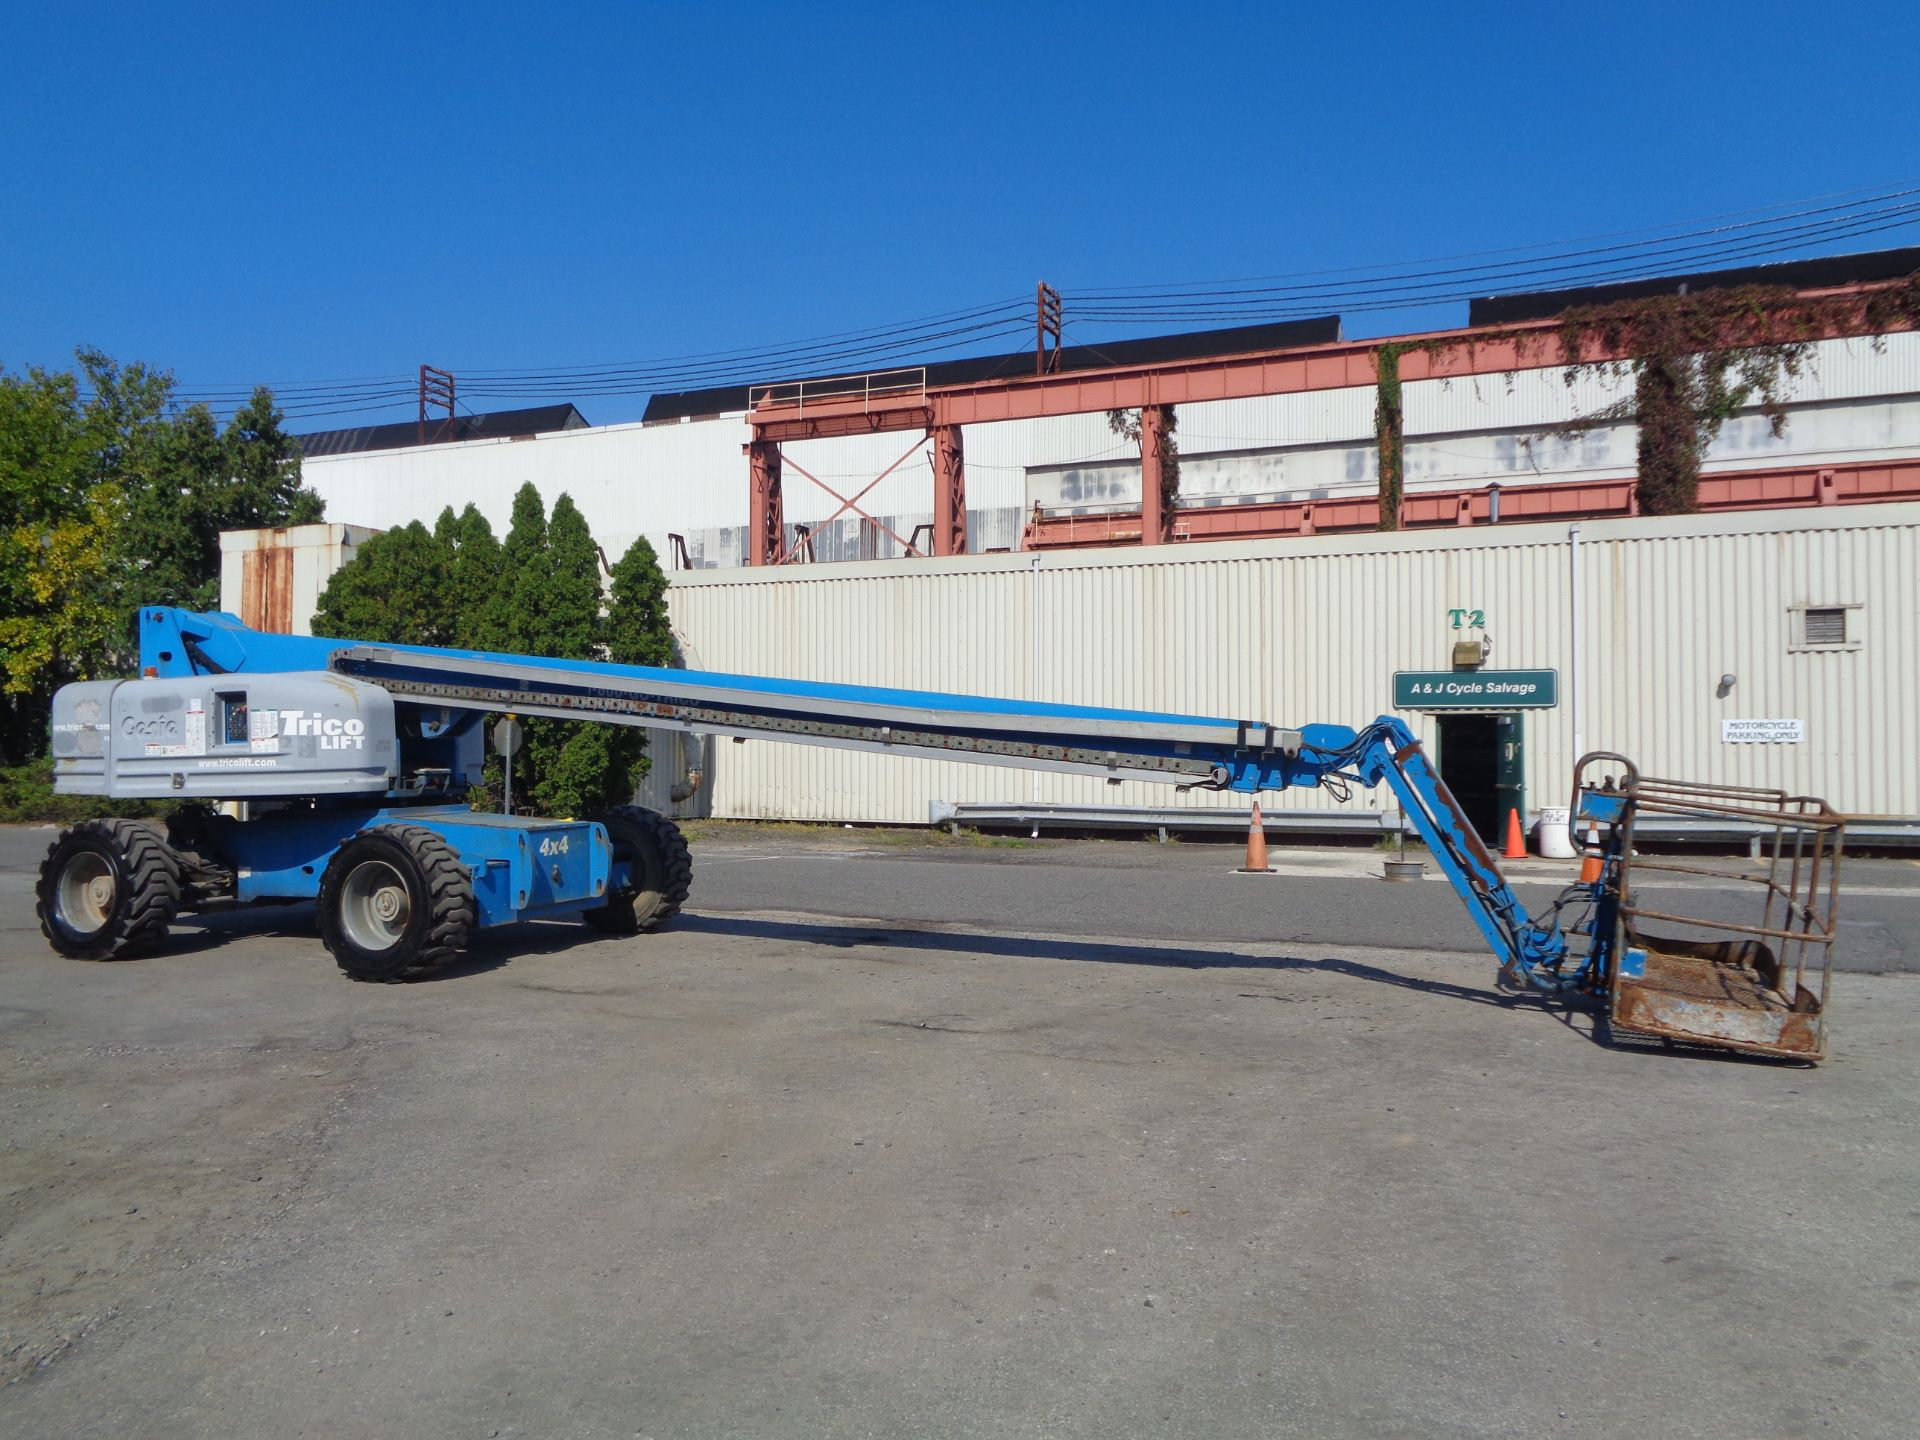 Lot 43 - 2008 Genie S85 85ft Boom Lift